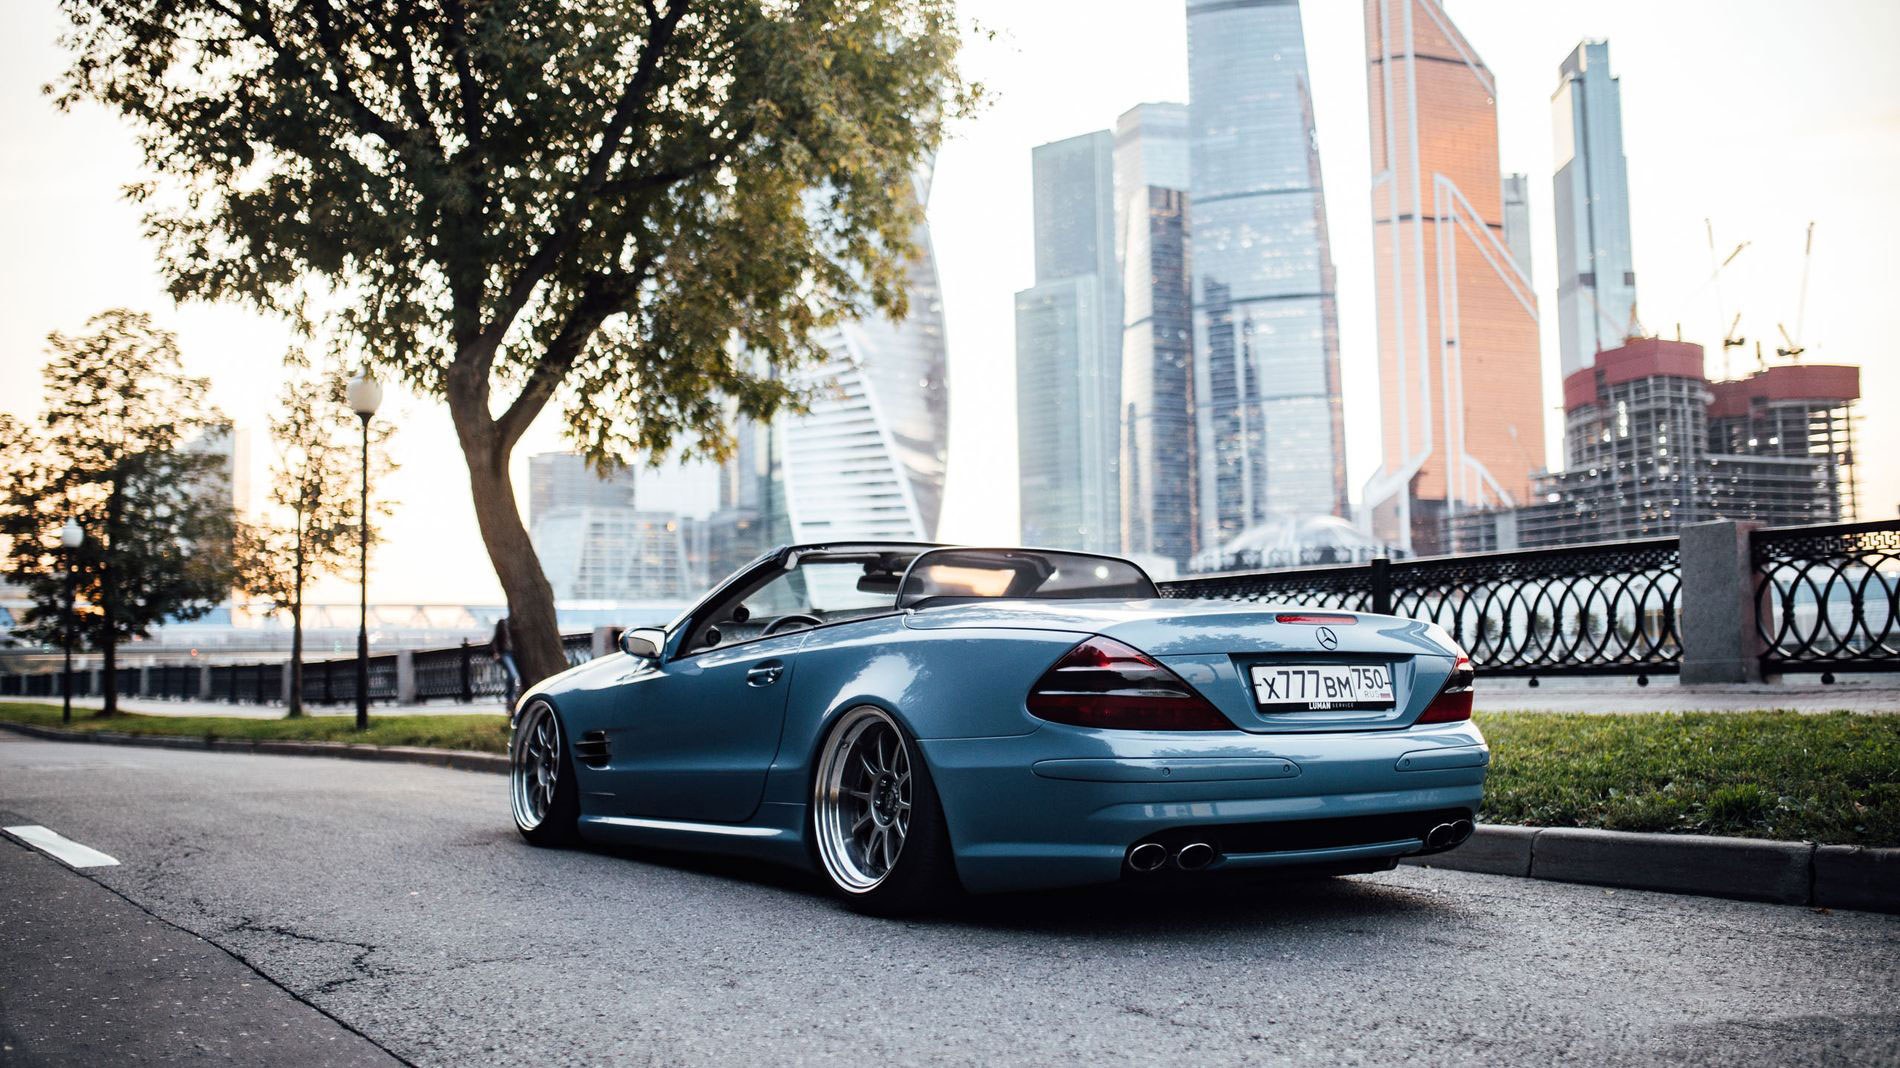 Mercedes-Benz AMG R230 Lowdaily